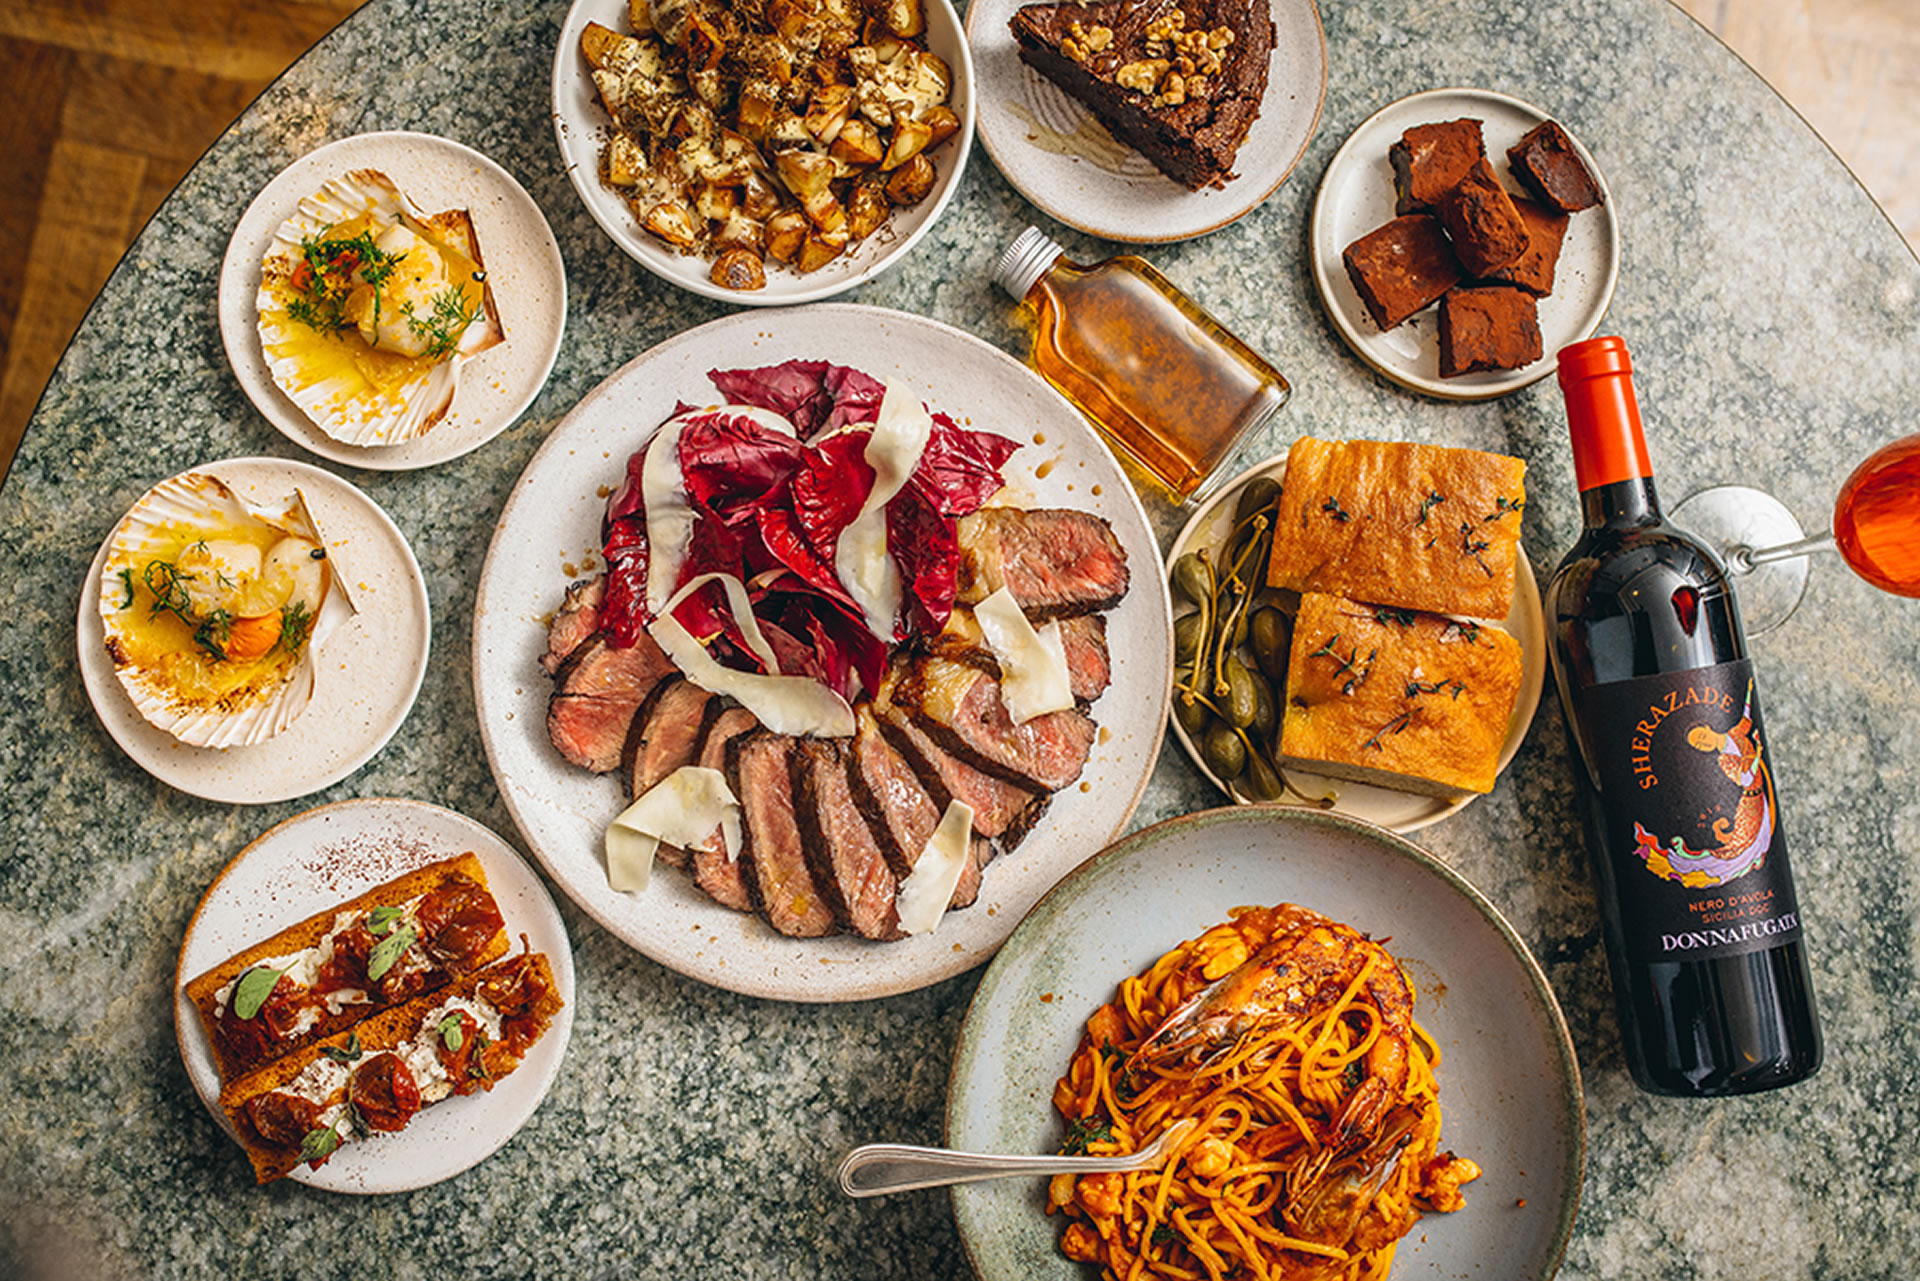 The food of love: Valentine's Day dinner deliveries in London